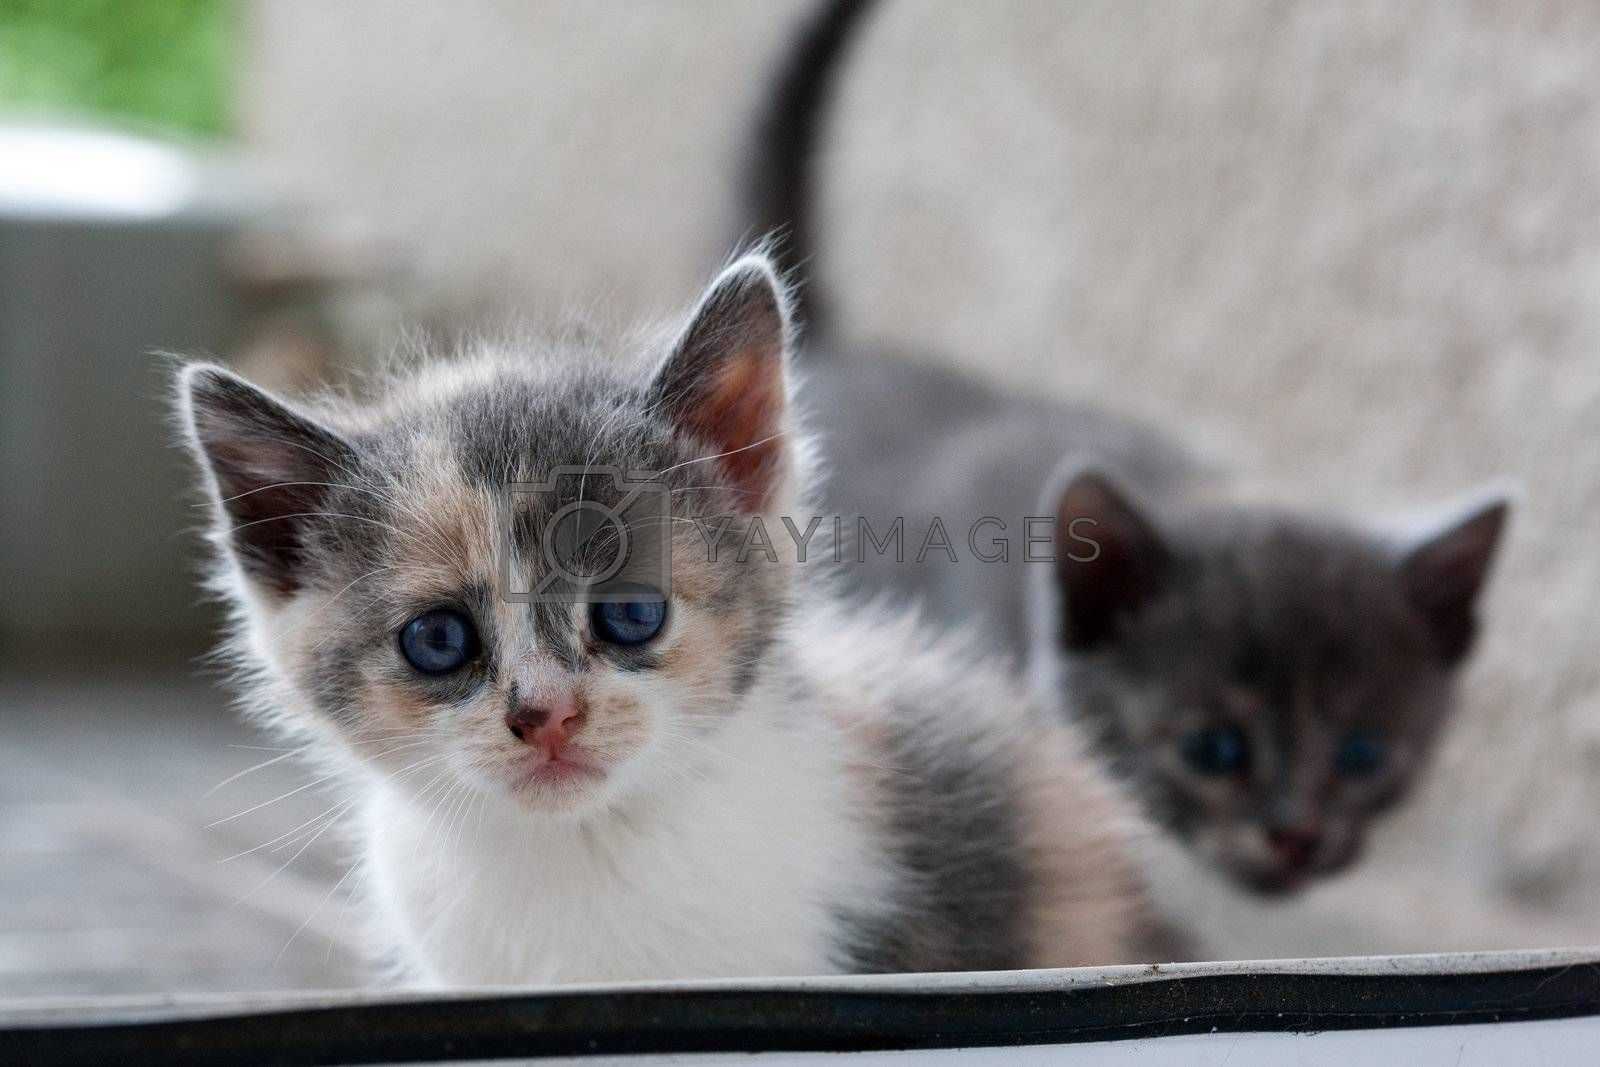 Royalty free image of kitten by agg